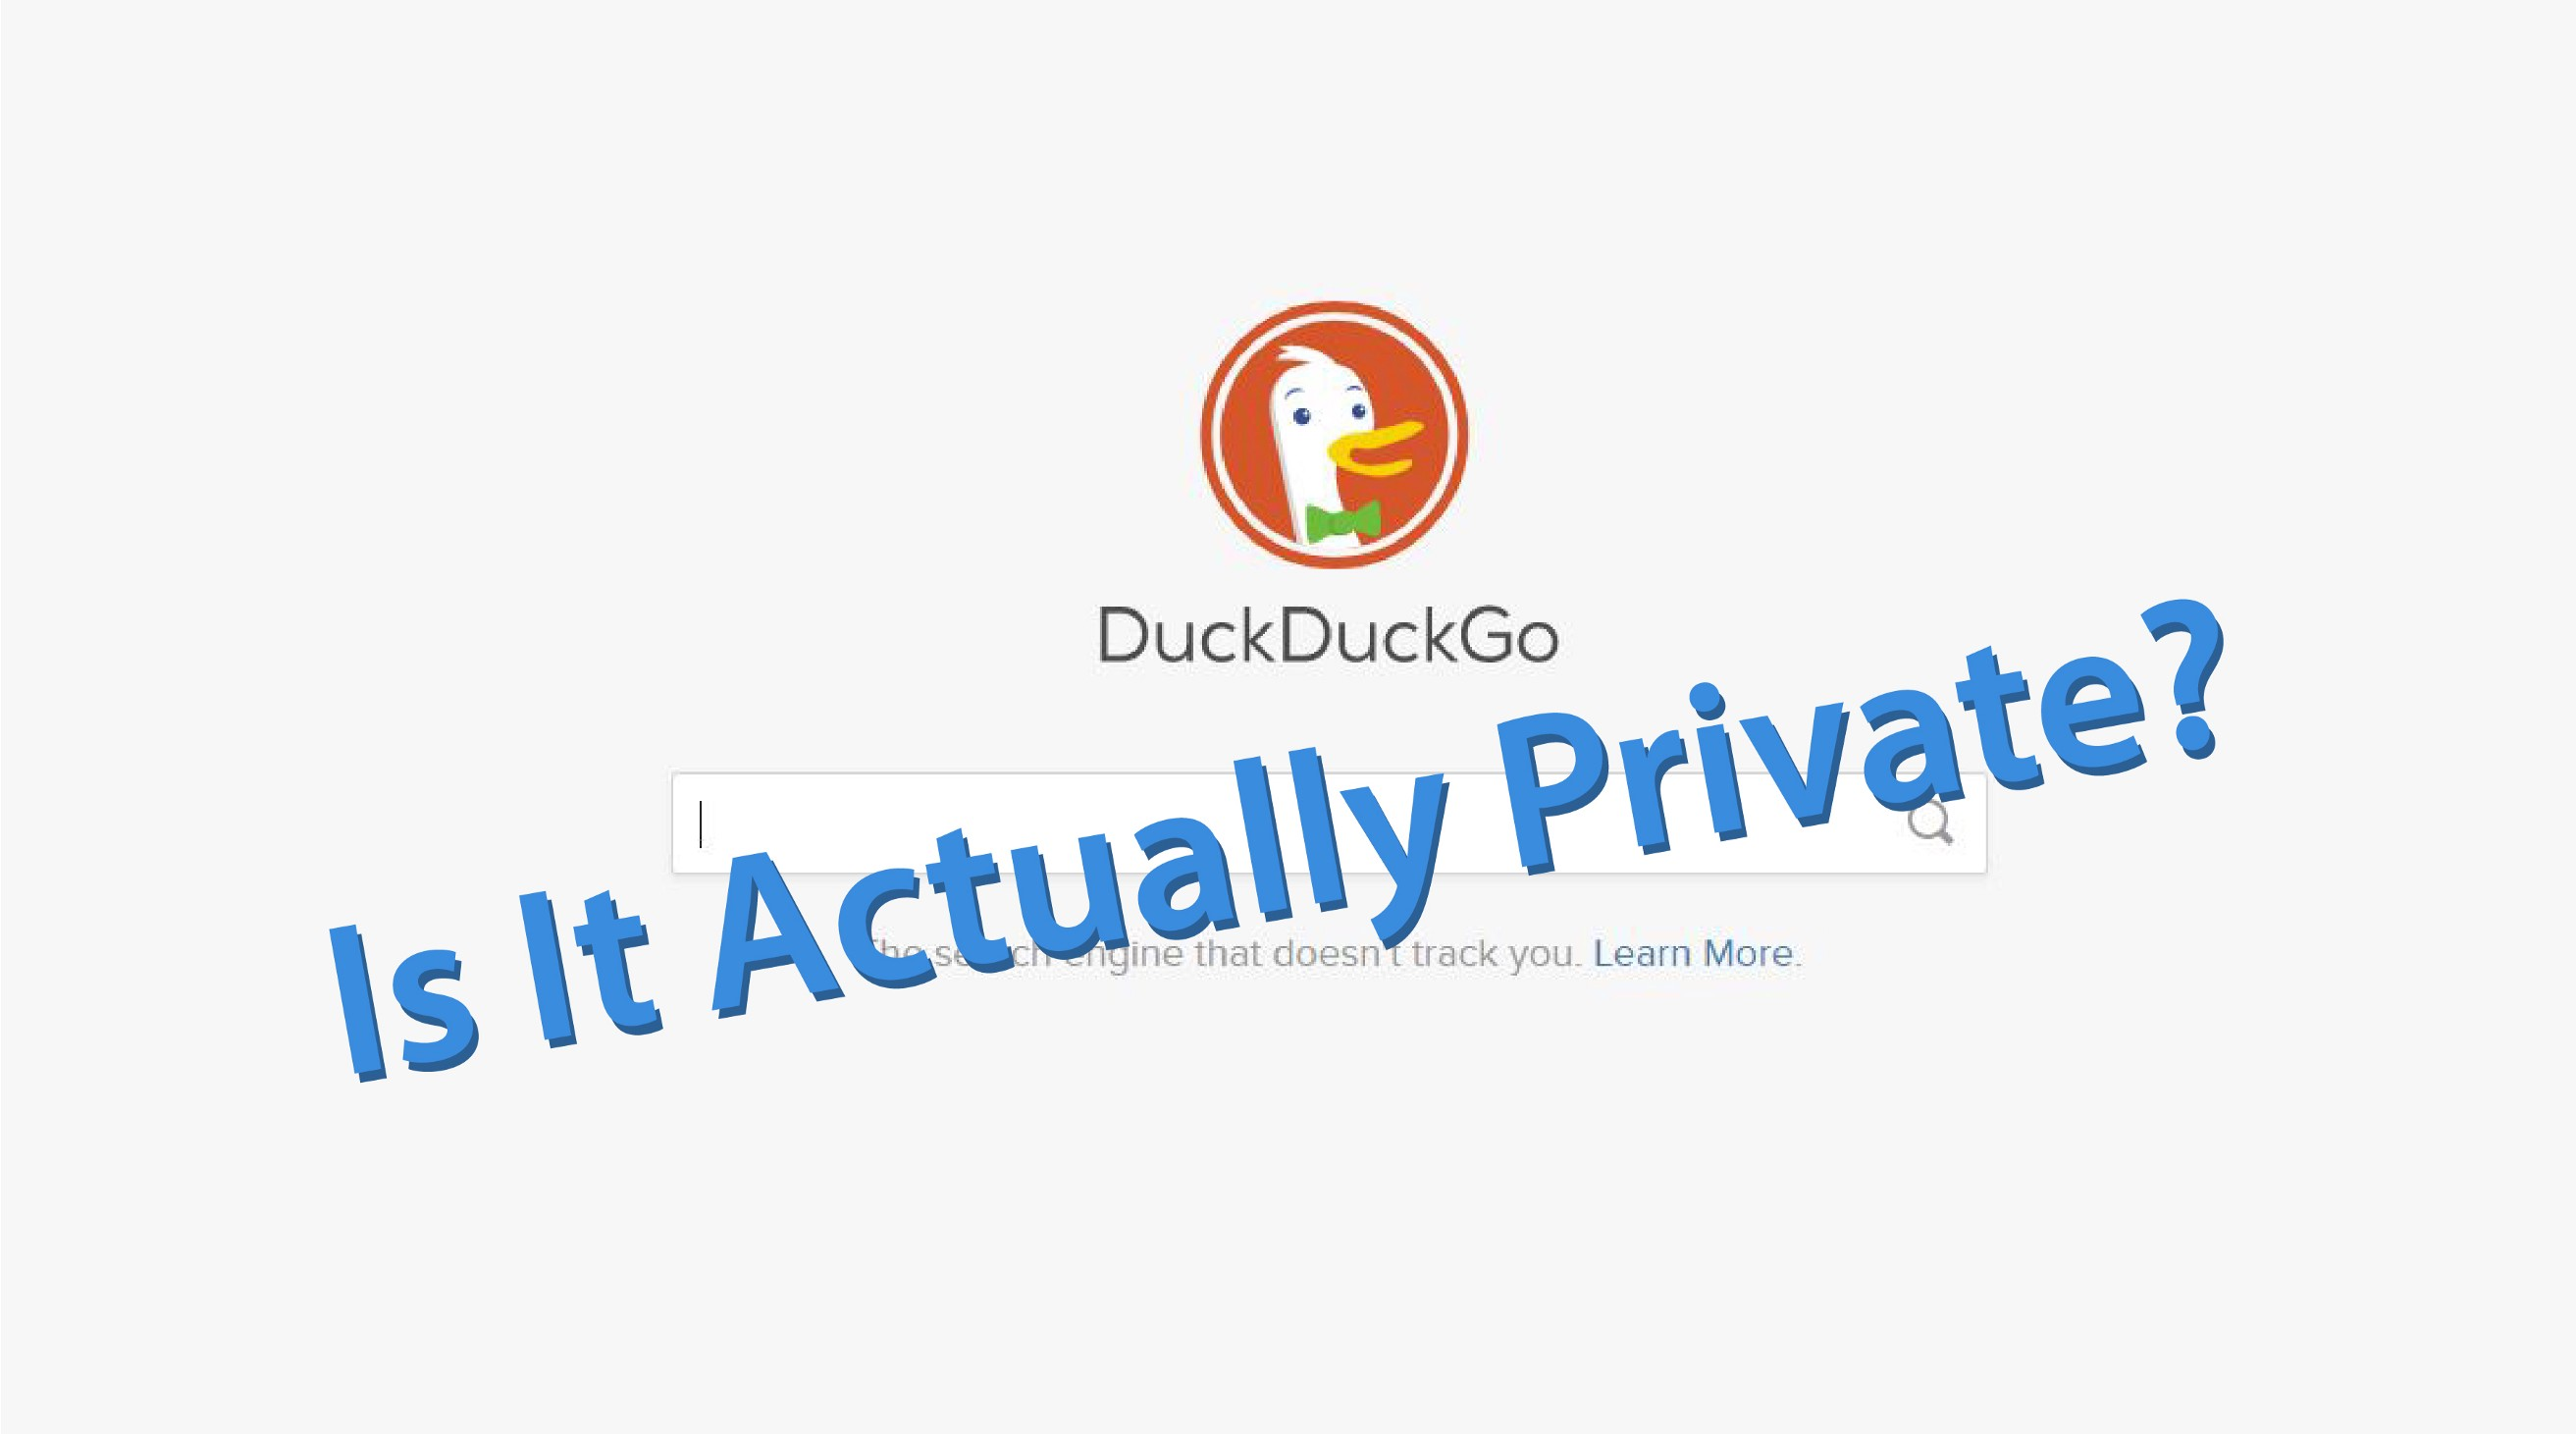 I Found This Flaw in DuckDuckGo - Search Encrypt - Medium